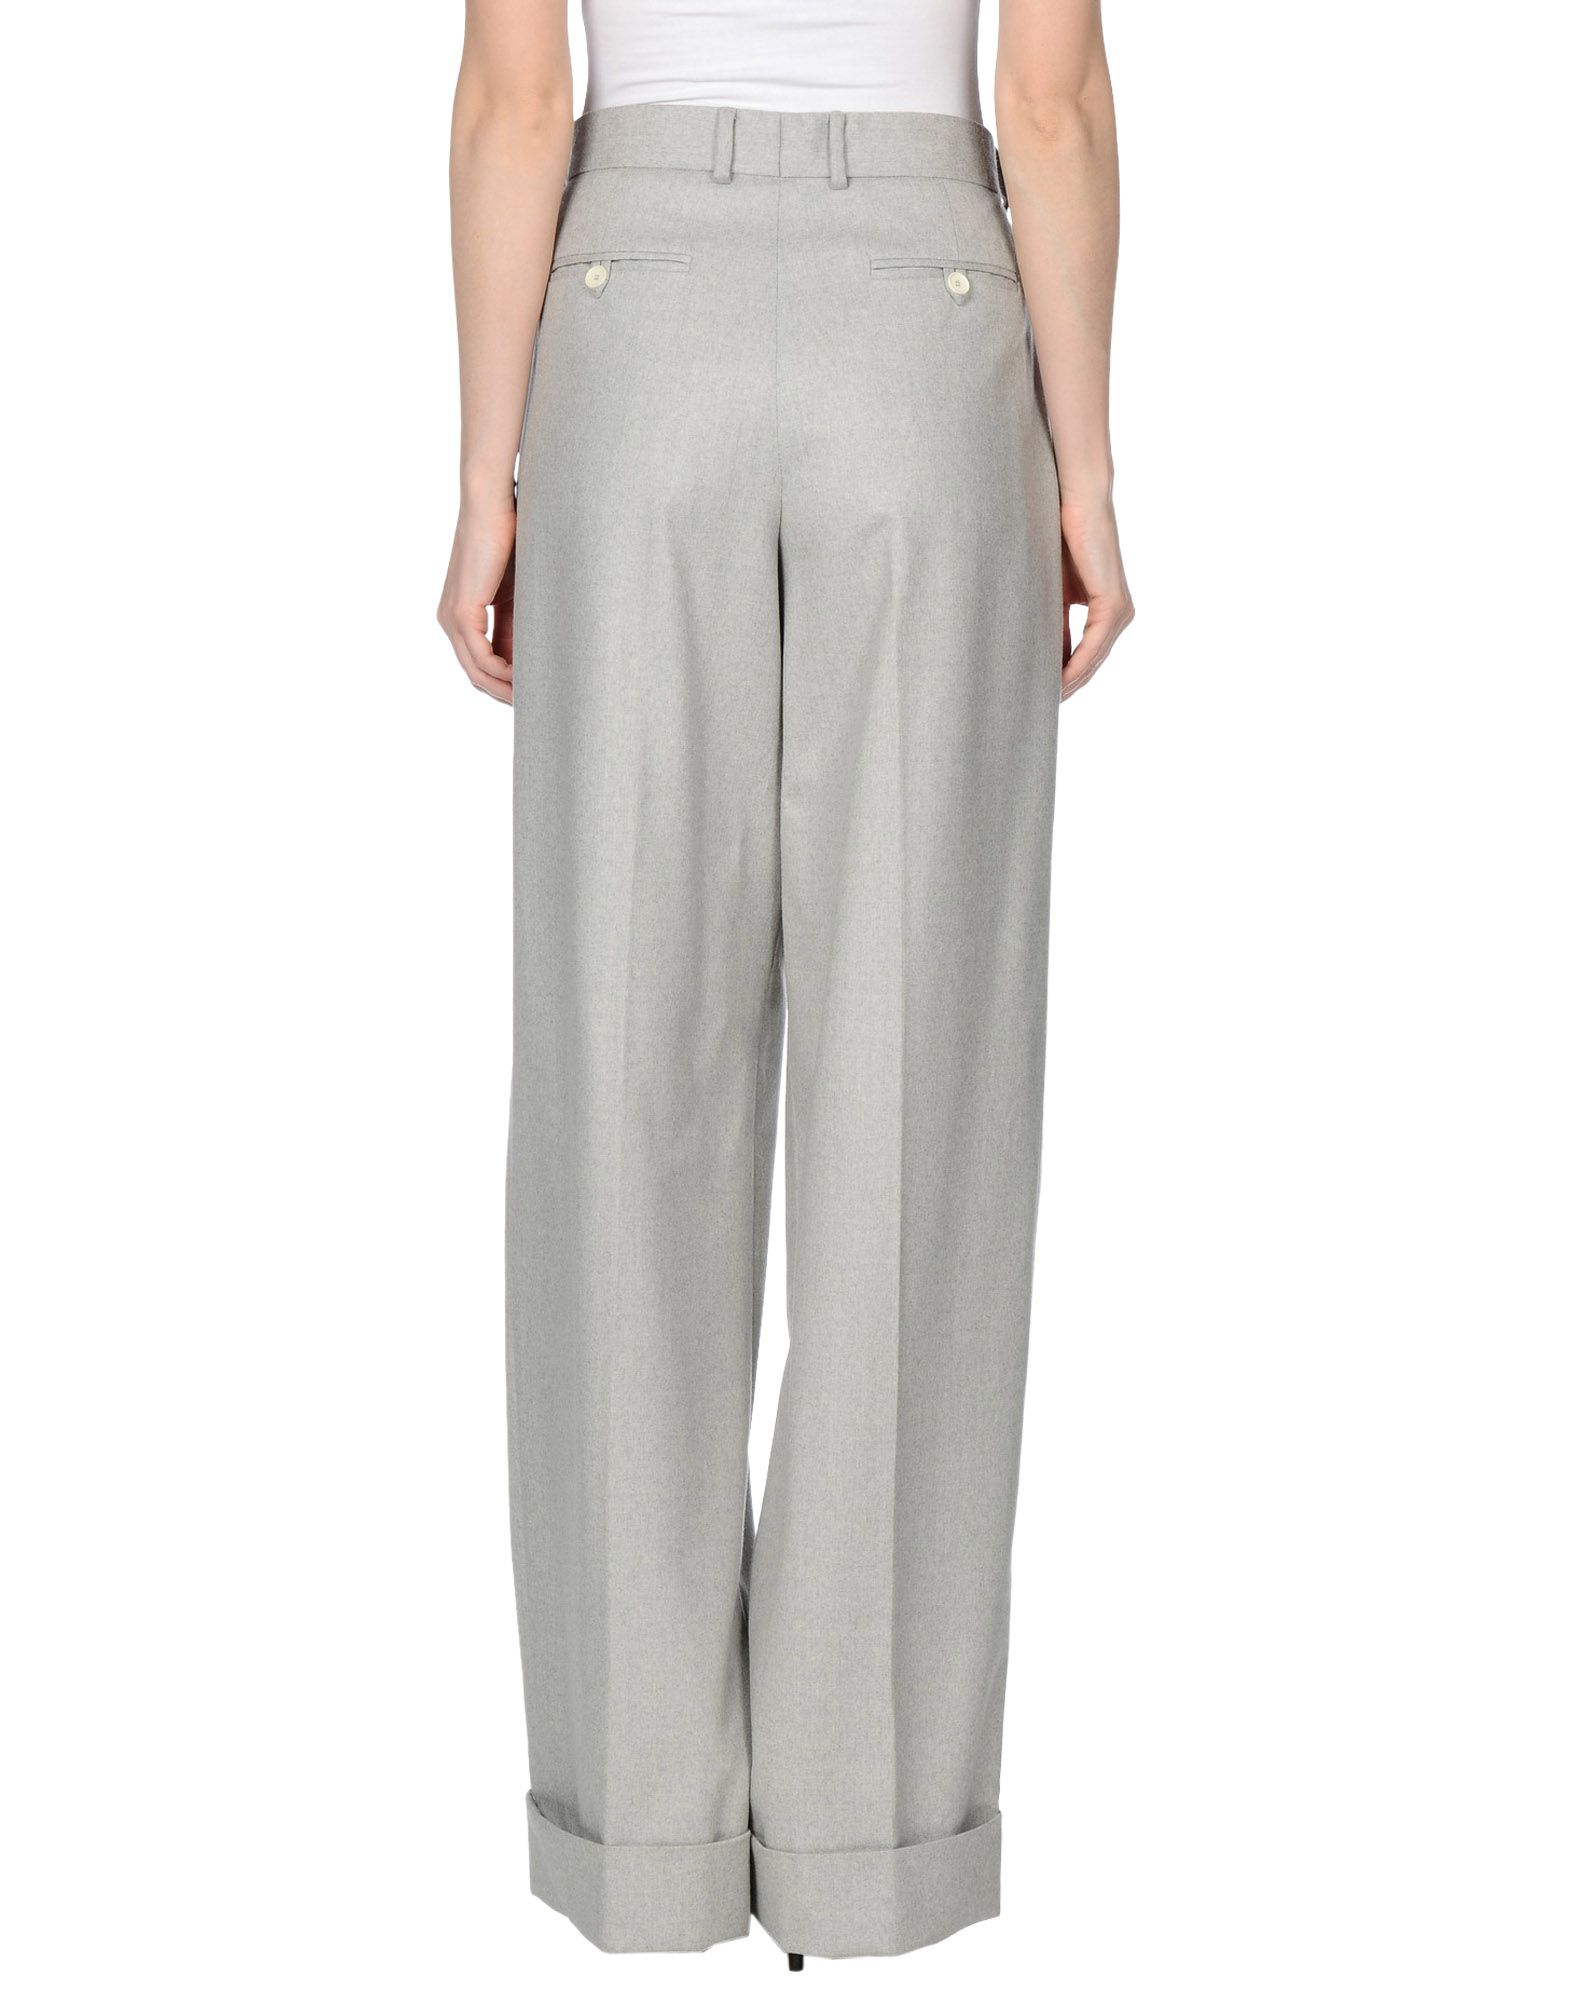 Original Trousers Pants Women Opus ELISE  Trousers  Light Grey H5FparRh